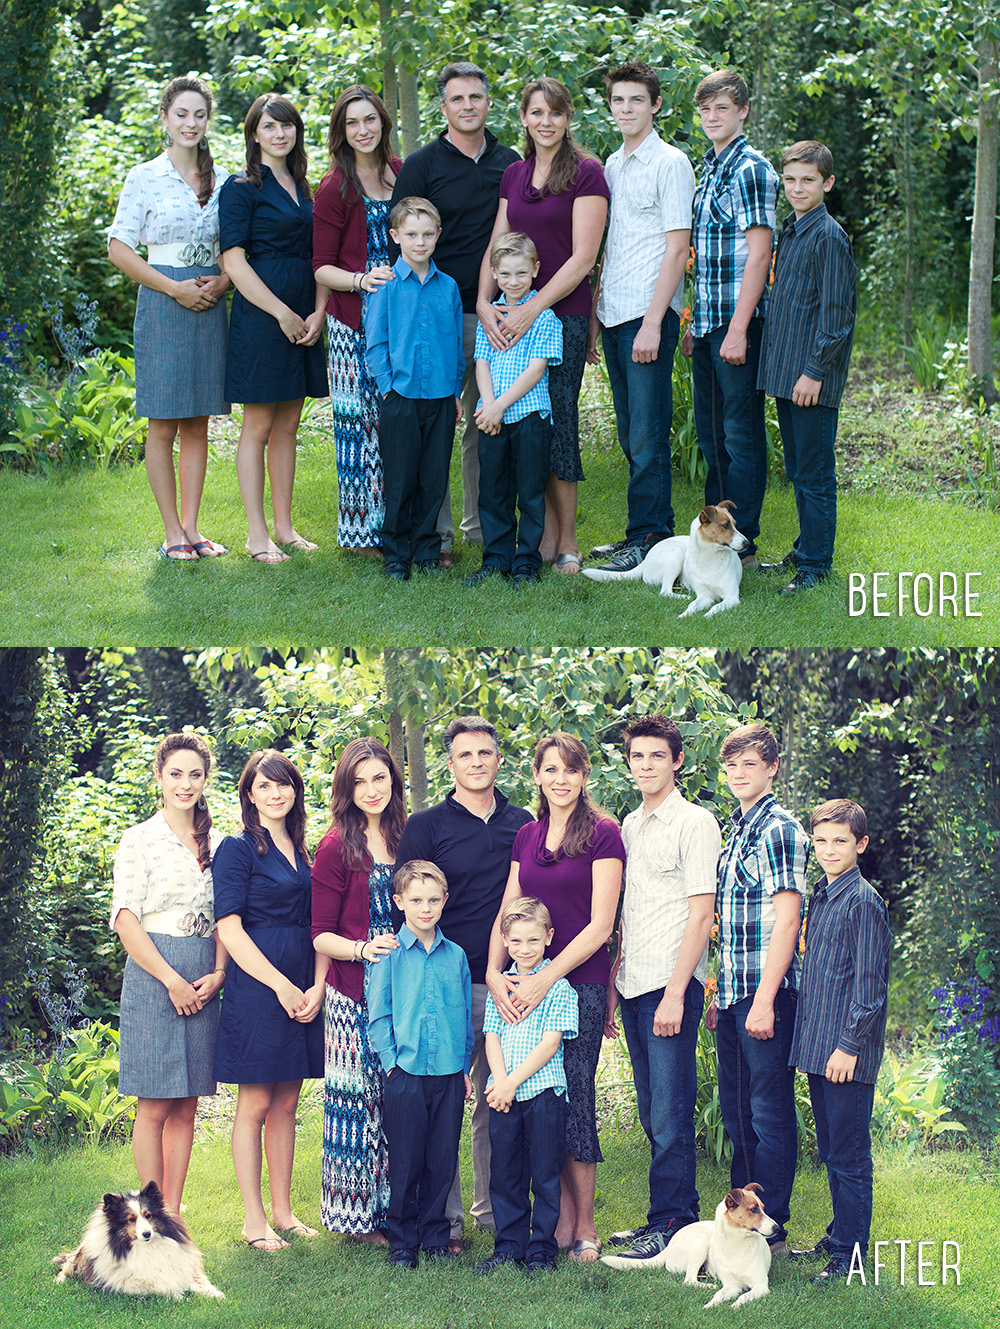 Family Photography | Edited photos before and after